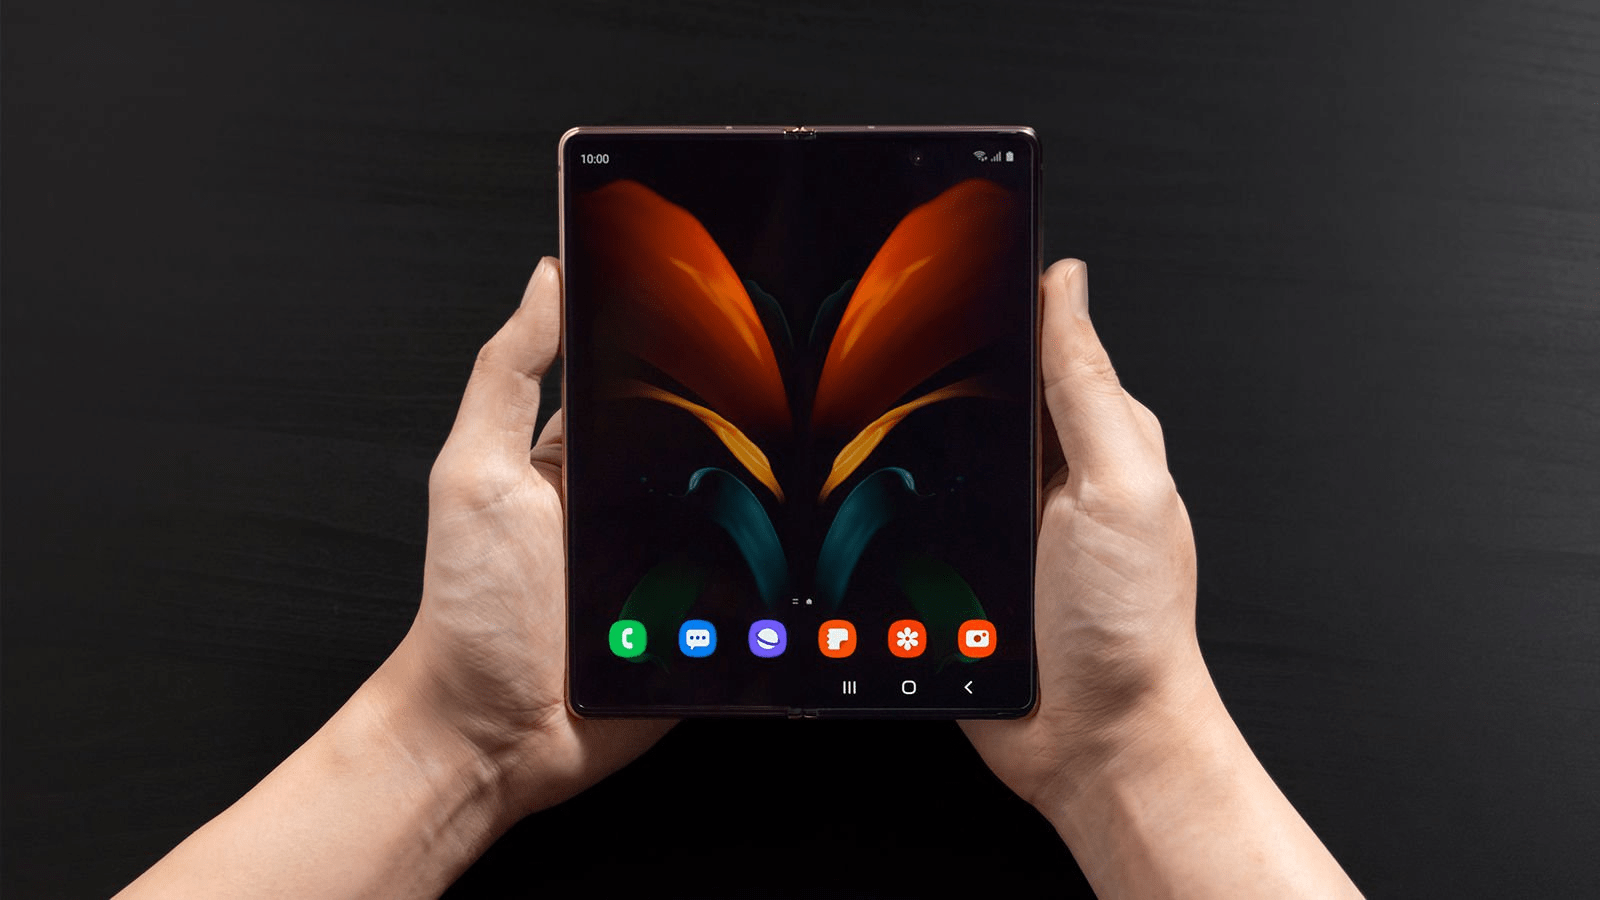 The Samsung Galaxy Z Fold 2 features are worth the hype